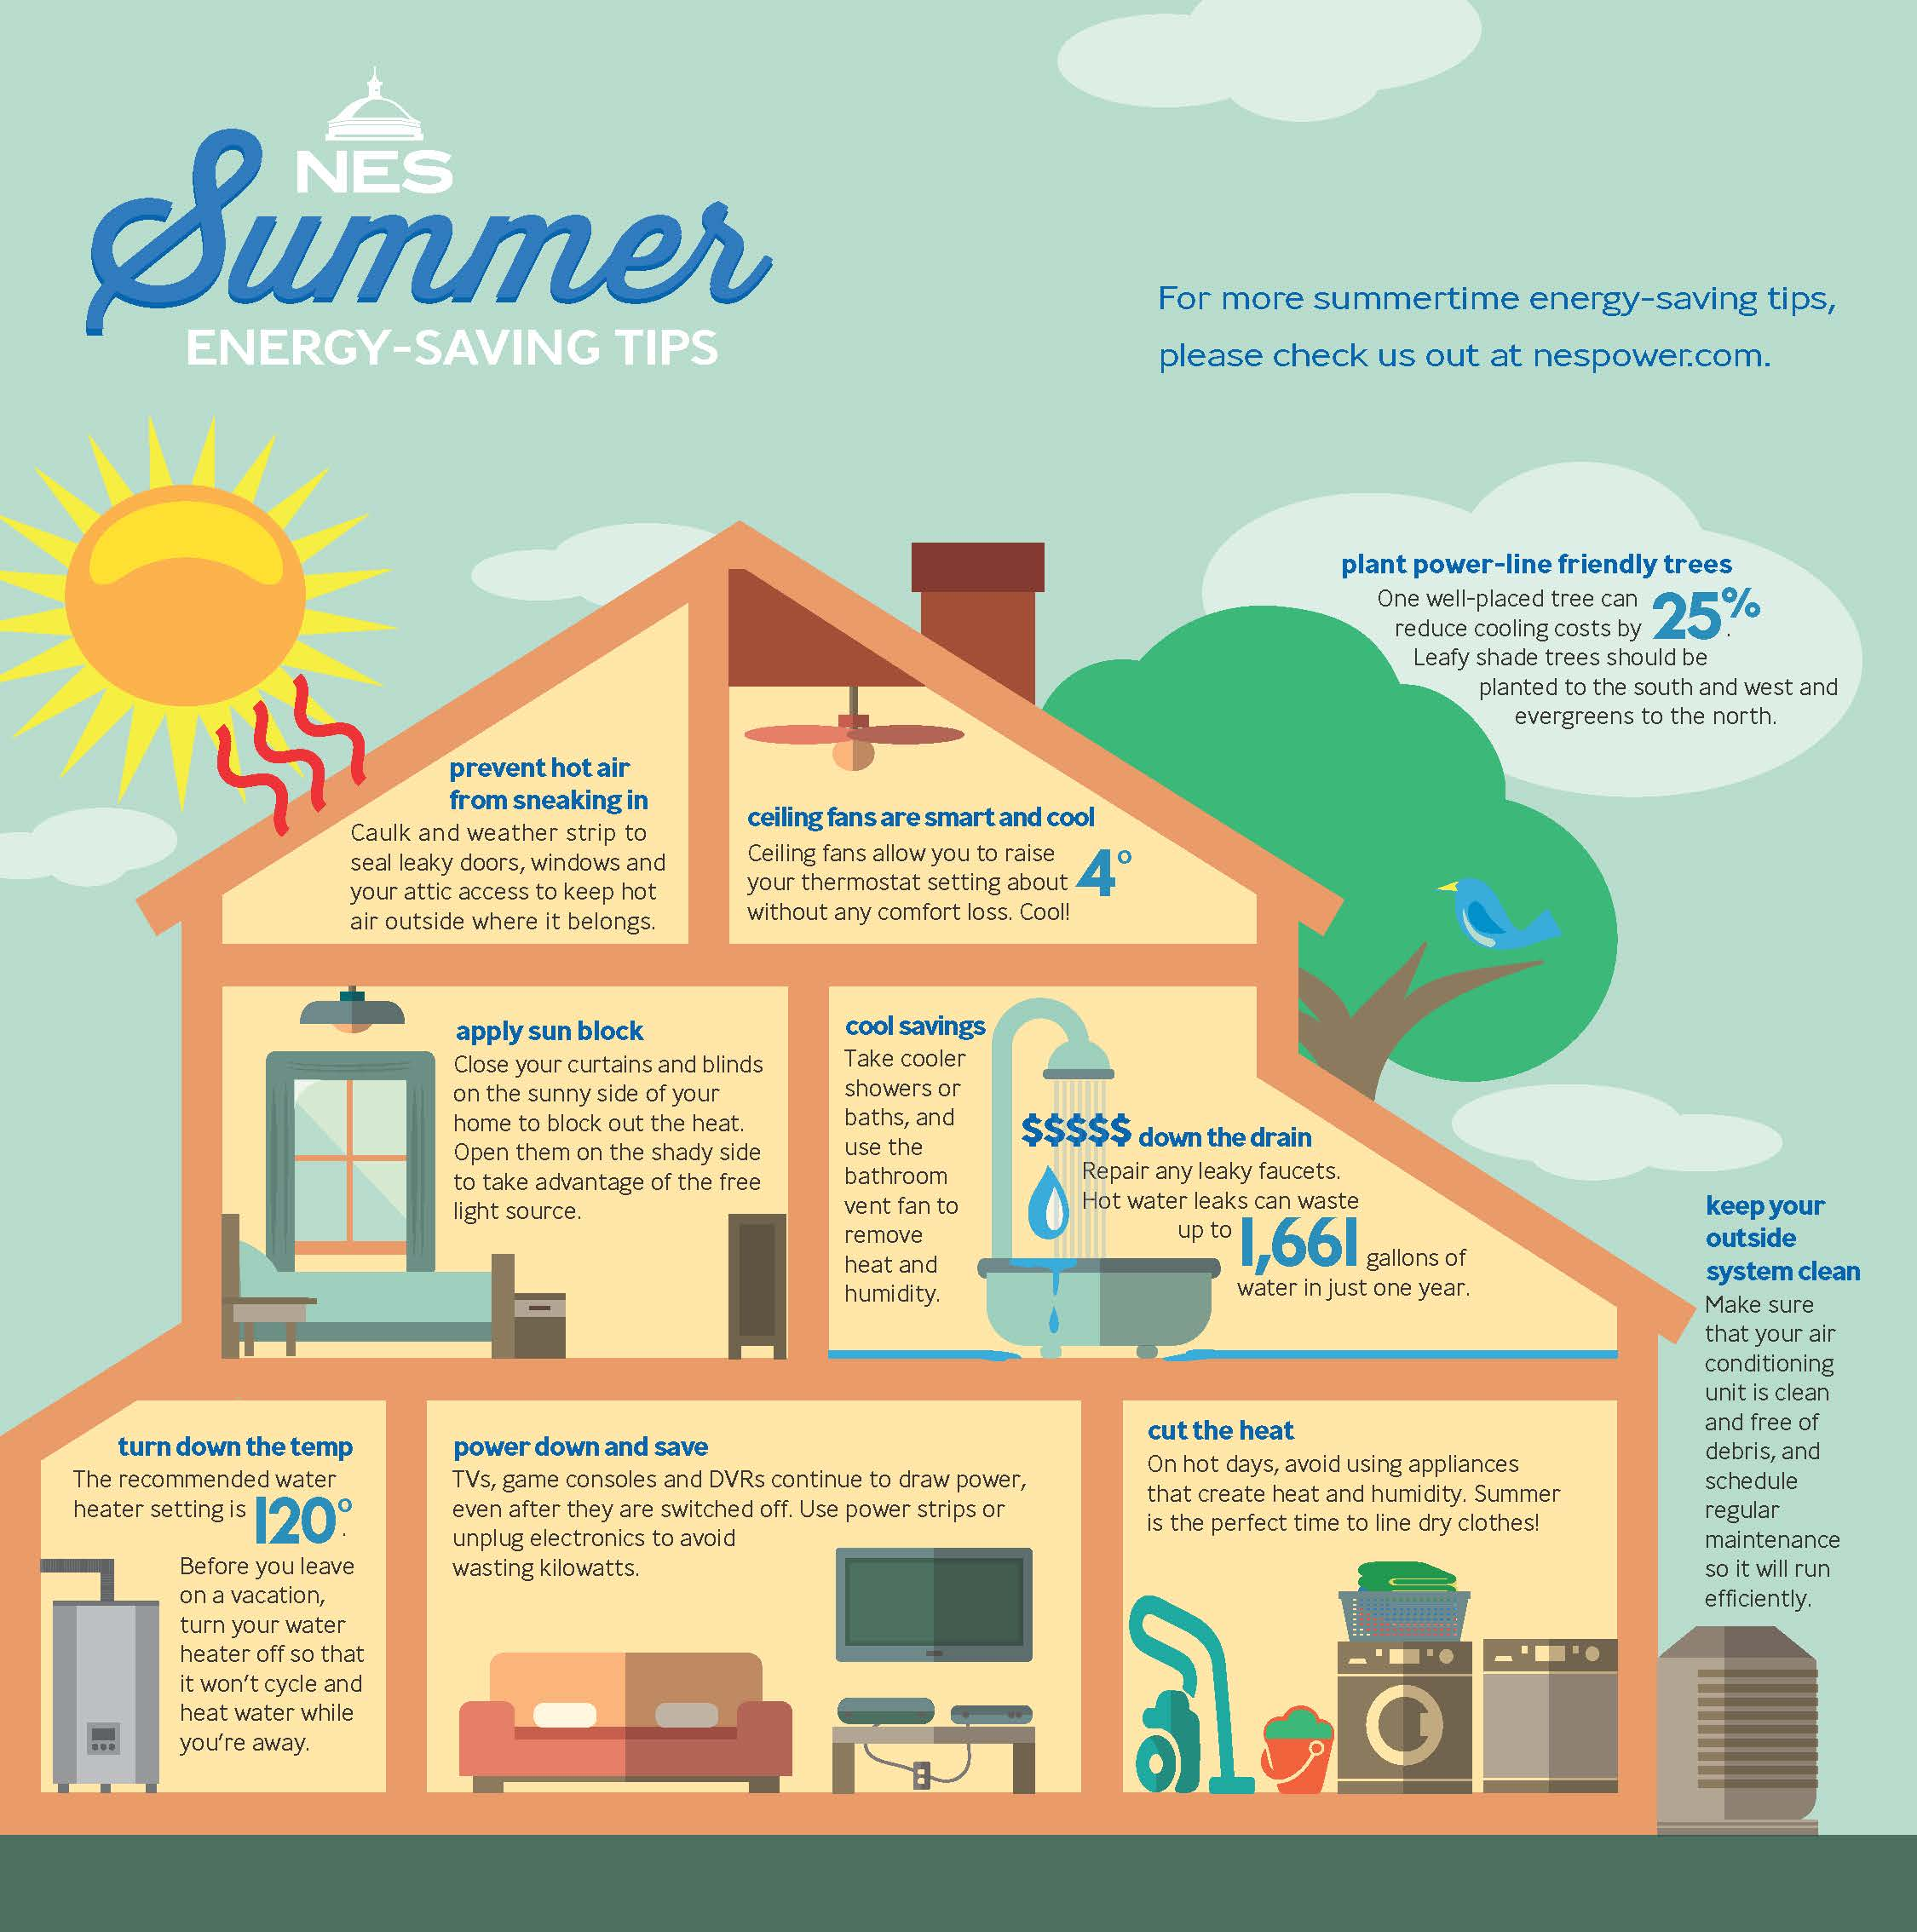 Nes Shows Cool Ways To Get Summertime Savings Nashville Electric Service News